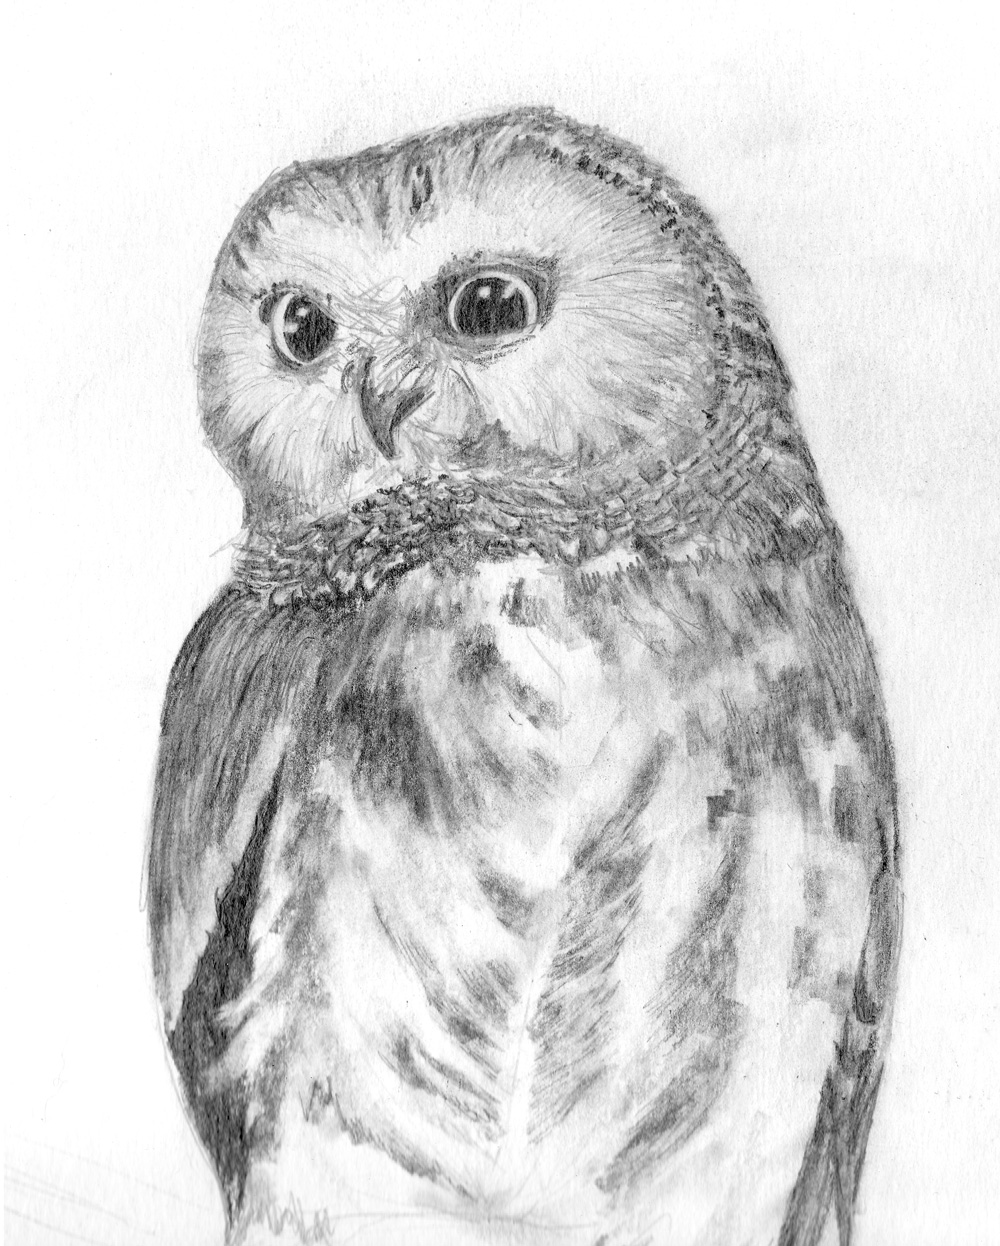 Saw-Whet Owl Study, Graphite Pencil on paper